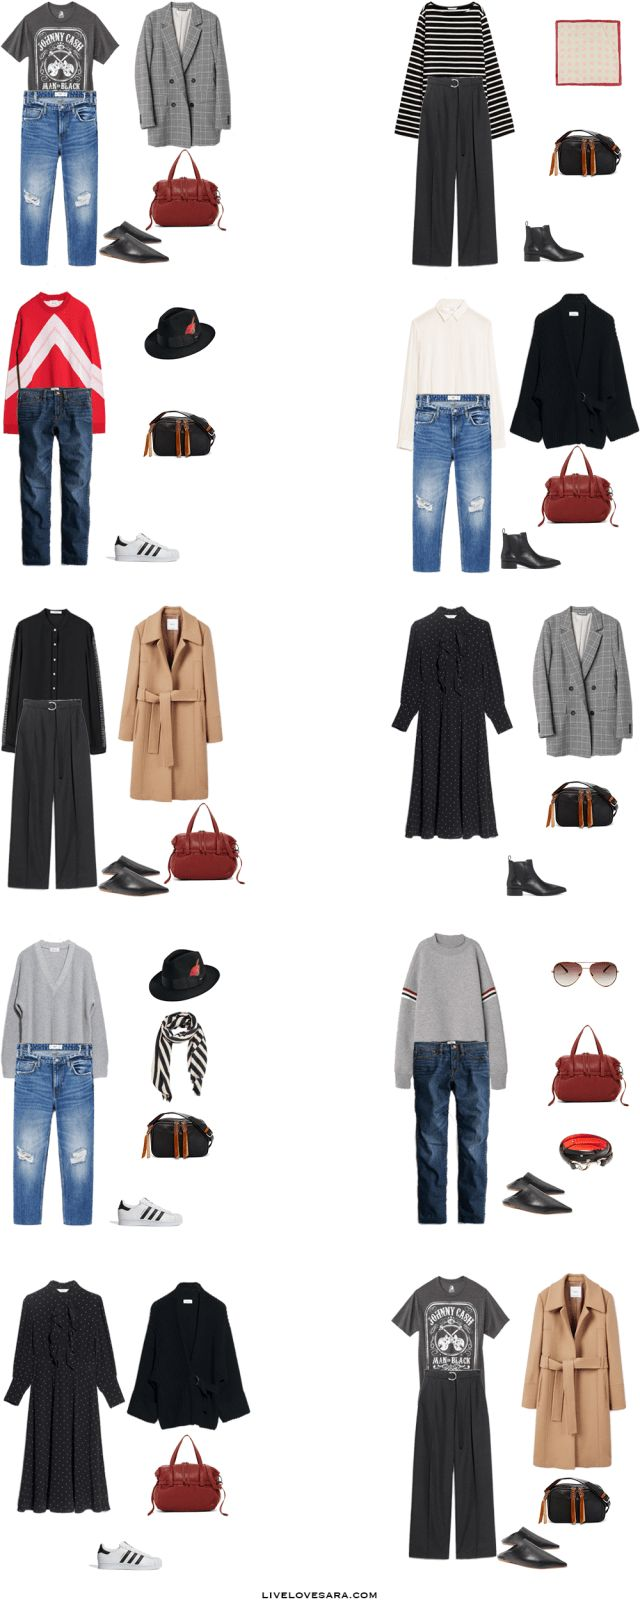 What to Pack for Munich, Florence, and Serbia Packing Light List Outfit Options 1-10 | What to What to Pack for Munich | What to What to Pack for Florence | What to What to Pack for Serbia | Packing Light | Packing List | Travel Light | Travel Wardrobe | Travel Capsule | Capsule |